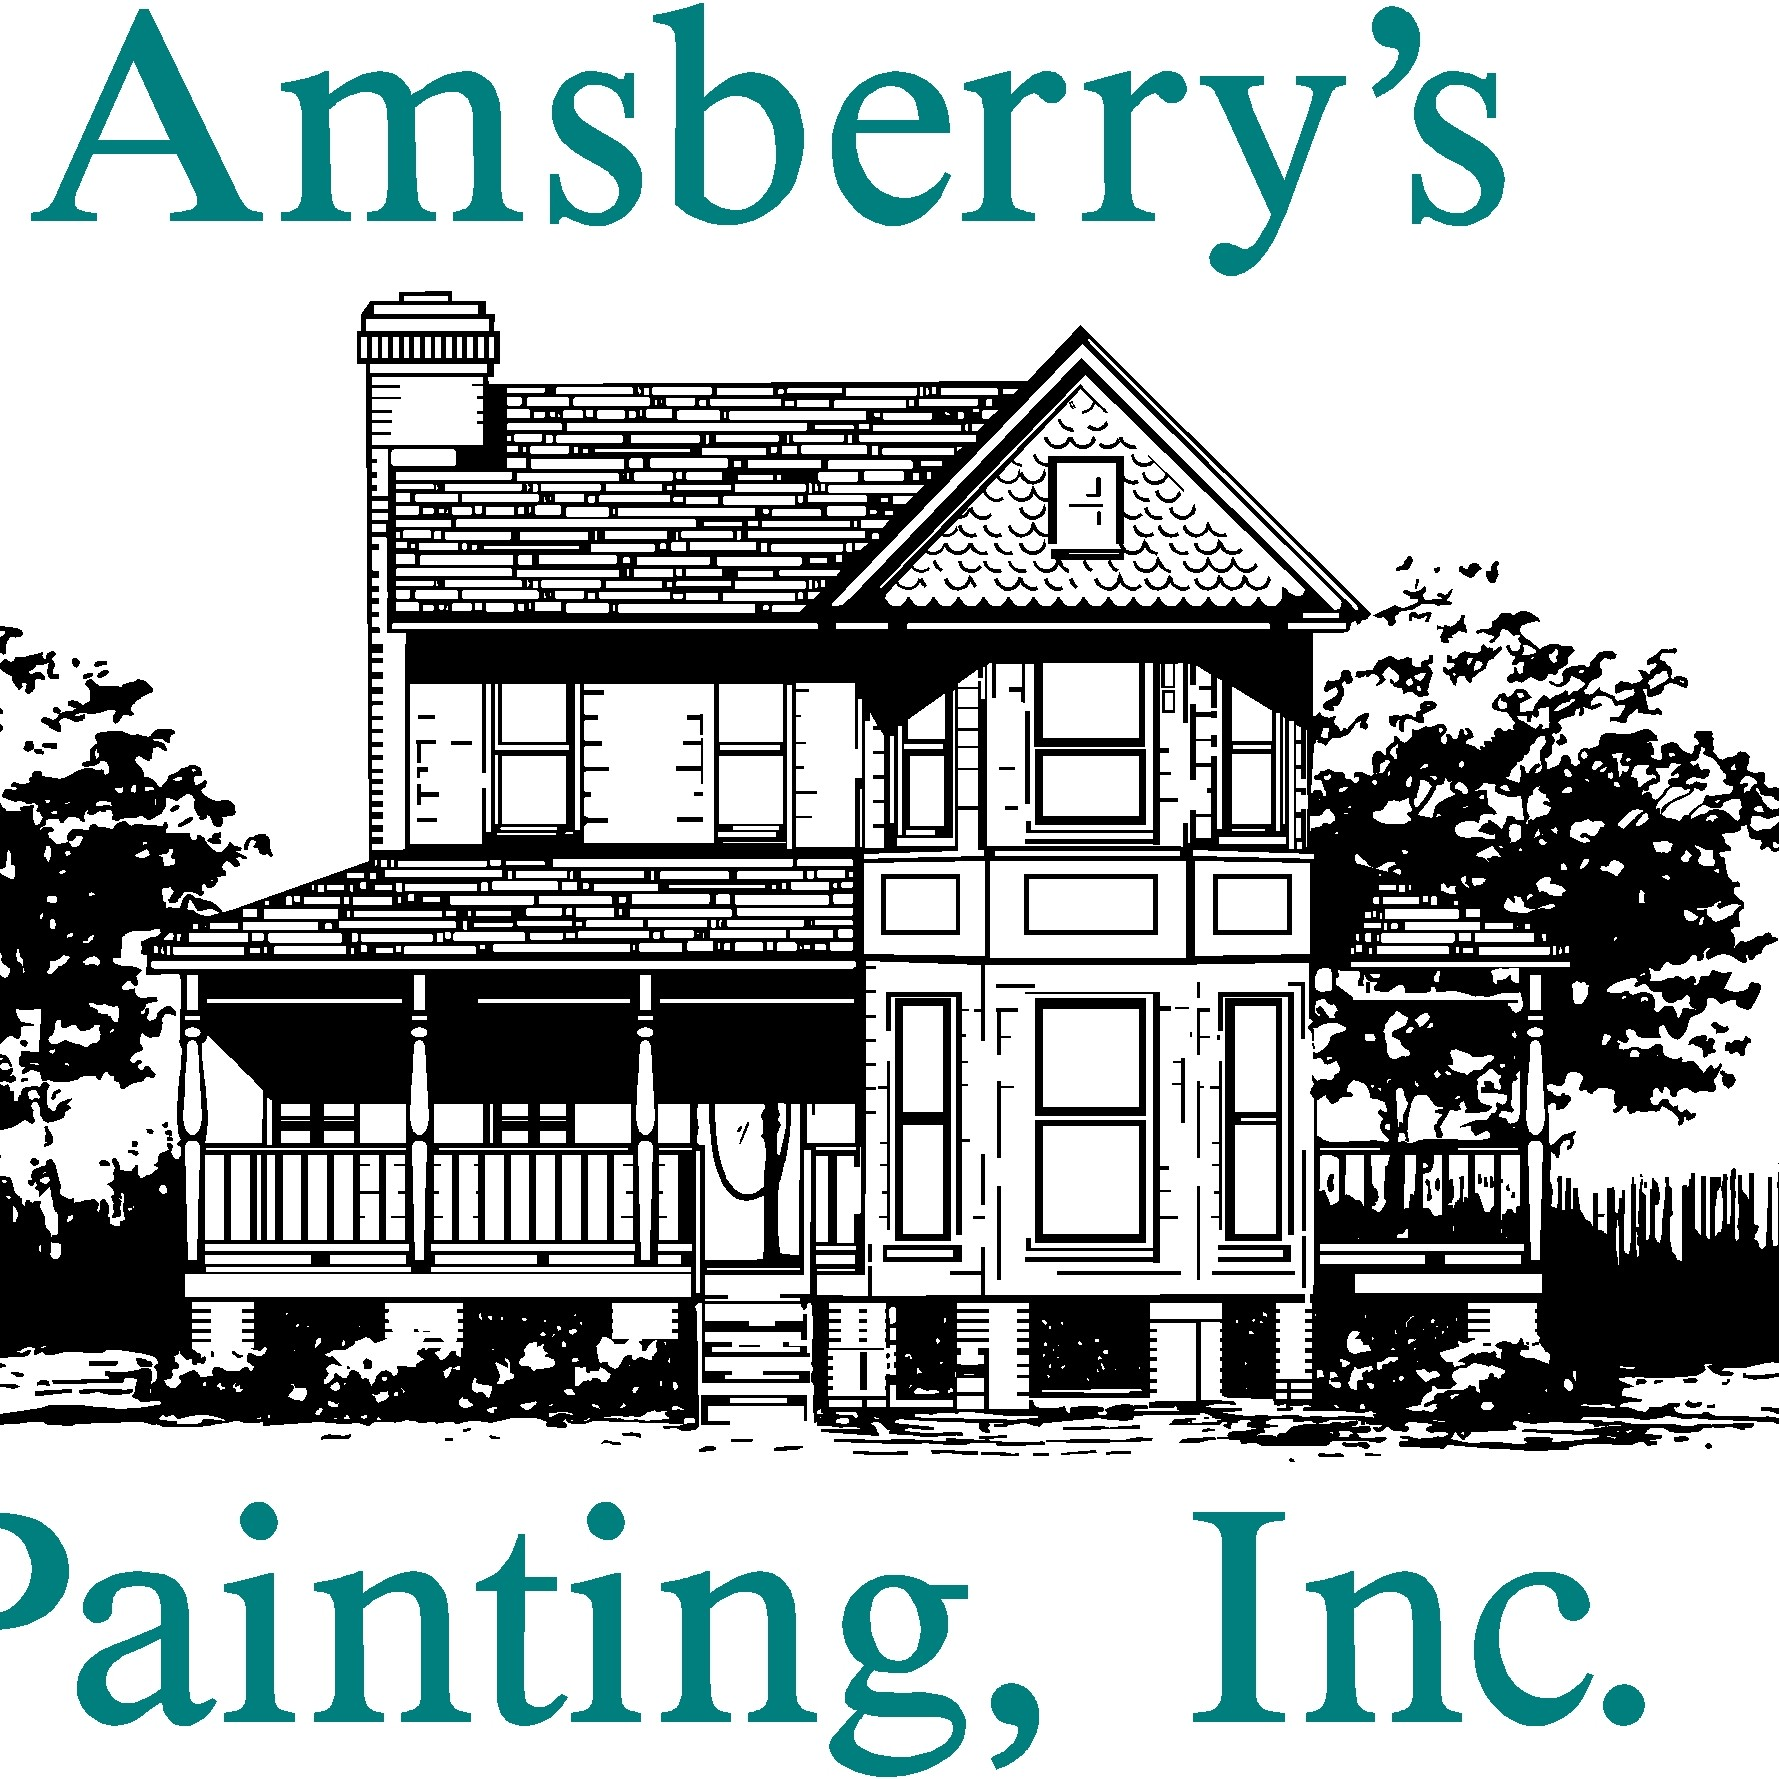 Amsberry's Painting, Inc.